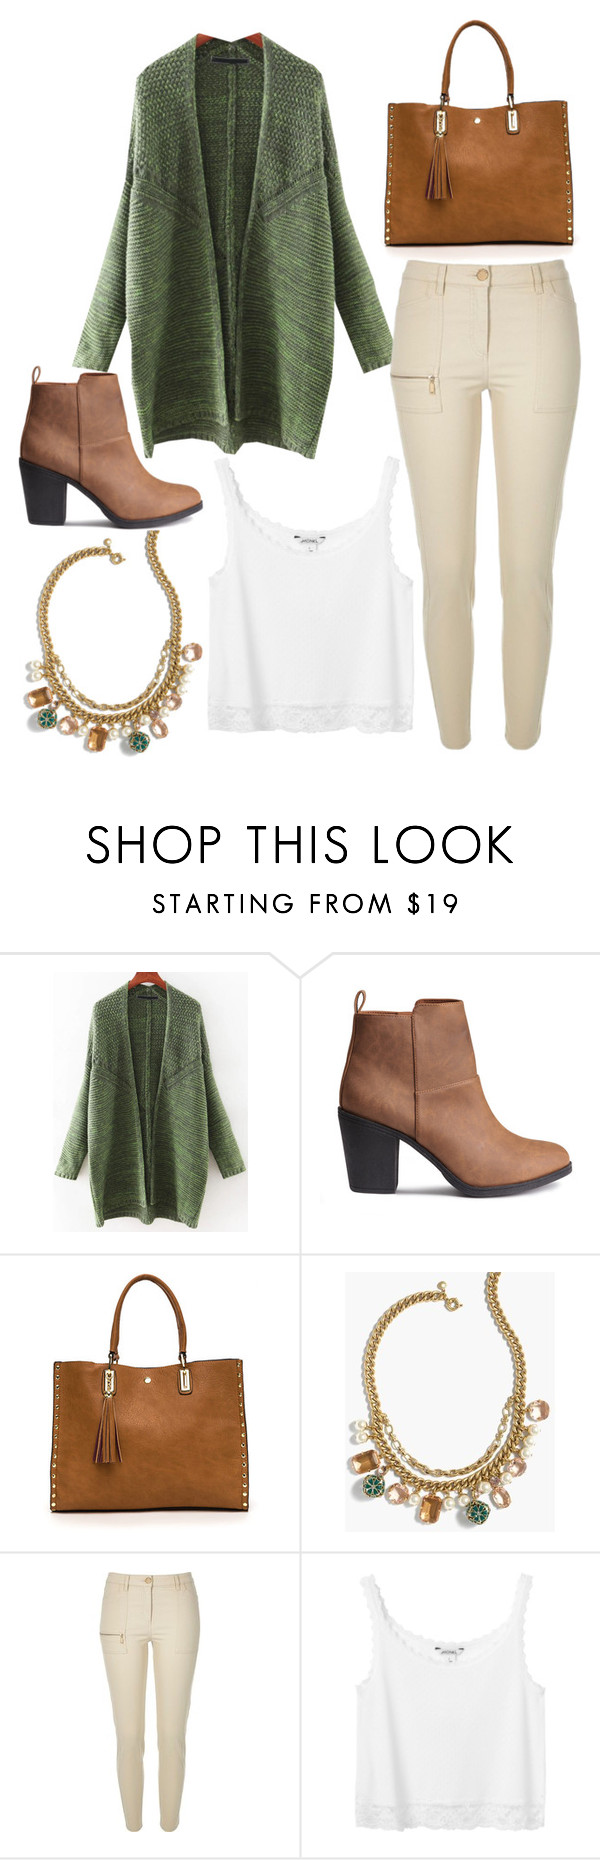 """""""Untitled #8643"""" by beatrizibelo ❤ liked on Polyvore featuring J.Crew, River Island and Monki"""